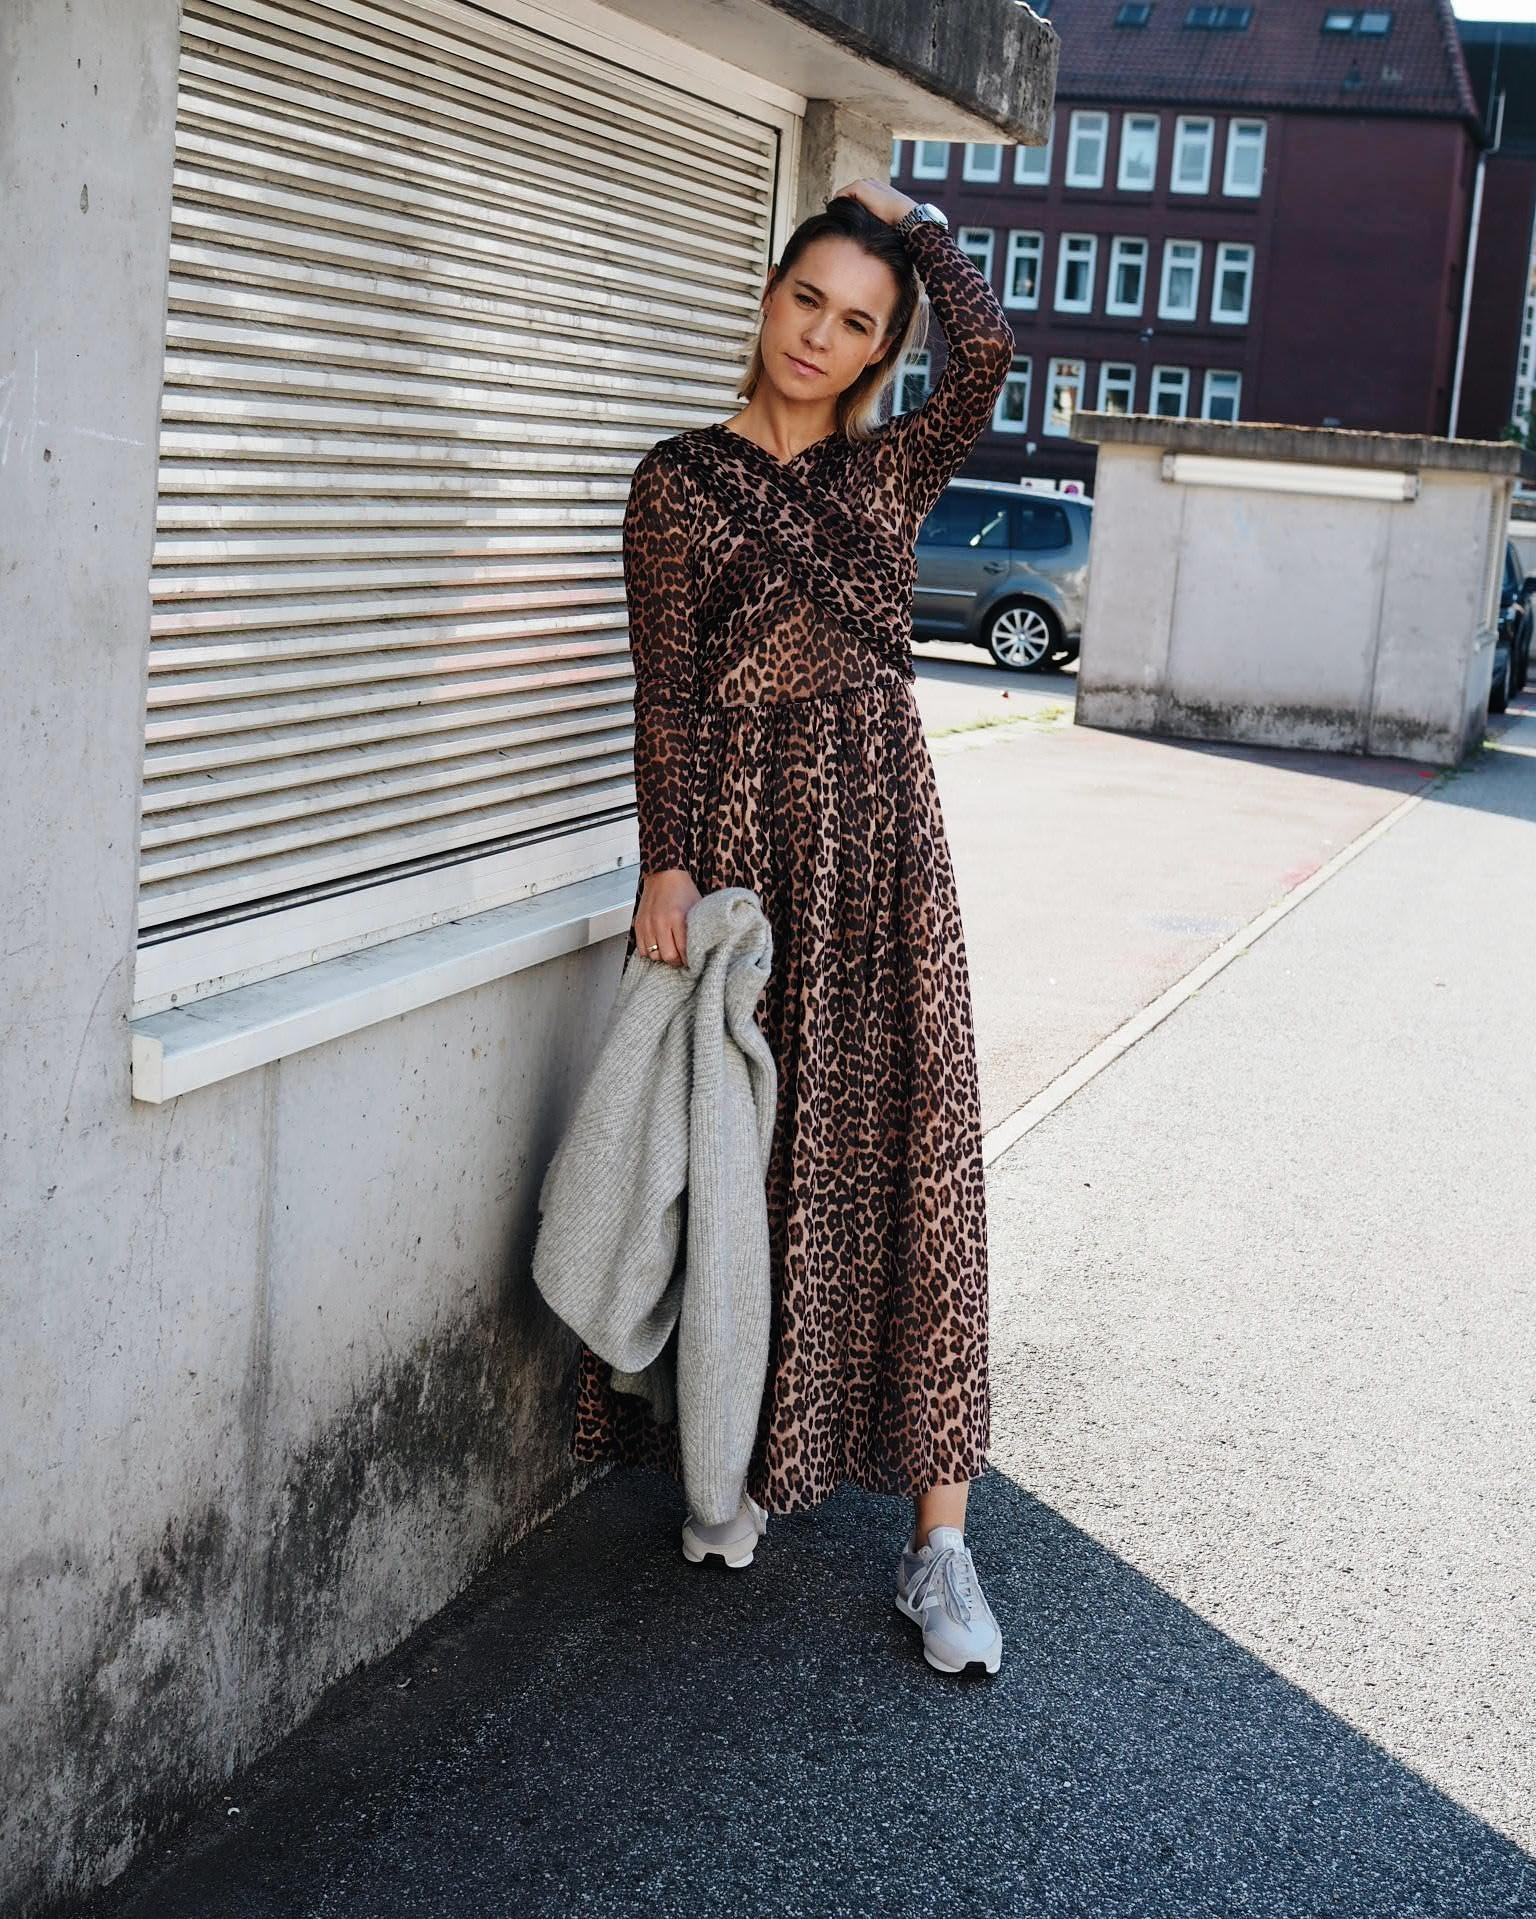 Leo Love 🐆 #fashion #streetfashion #streetstyle #outfit #ganni #leodress #leolove #leo #fashioncrush